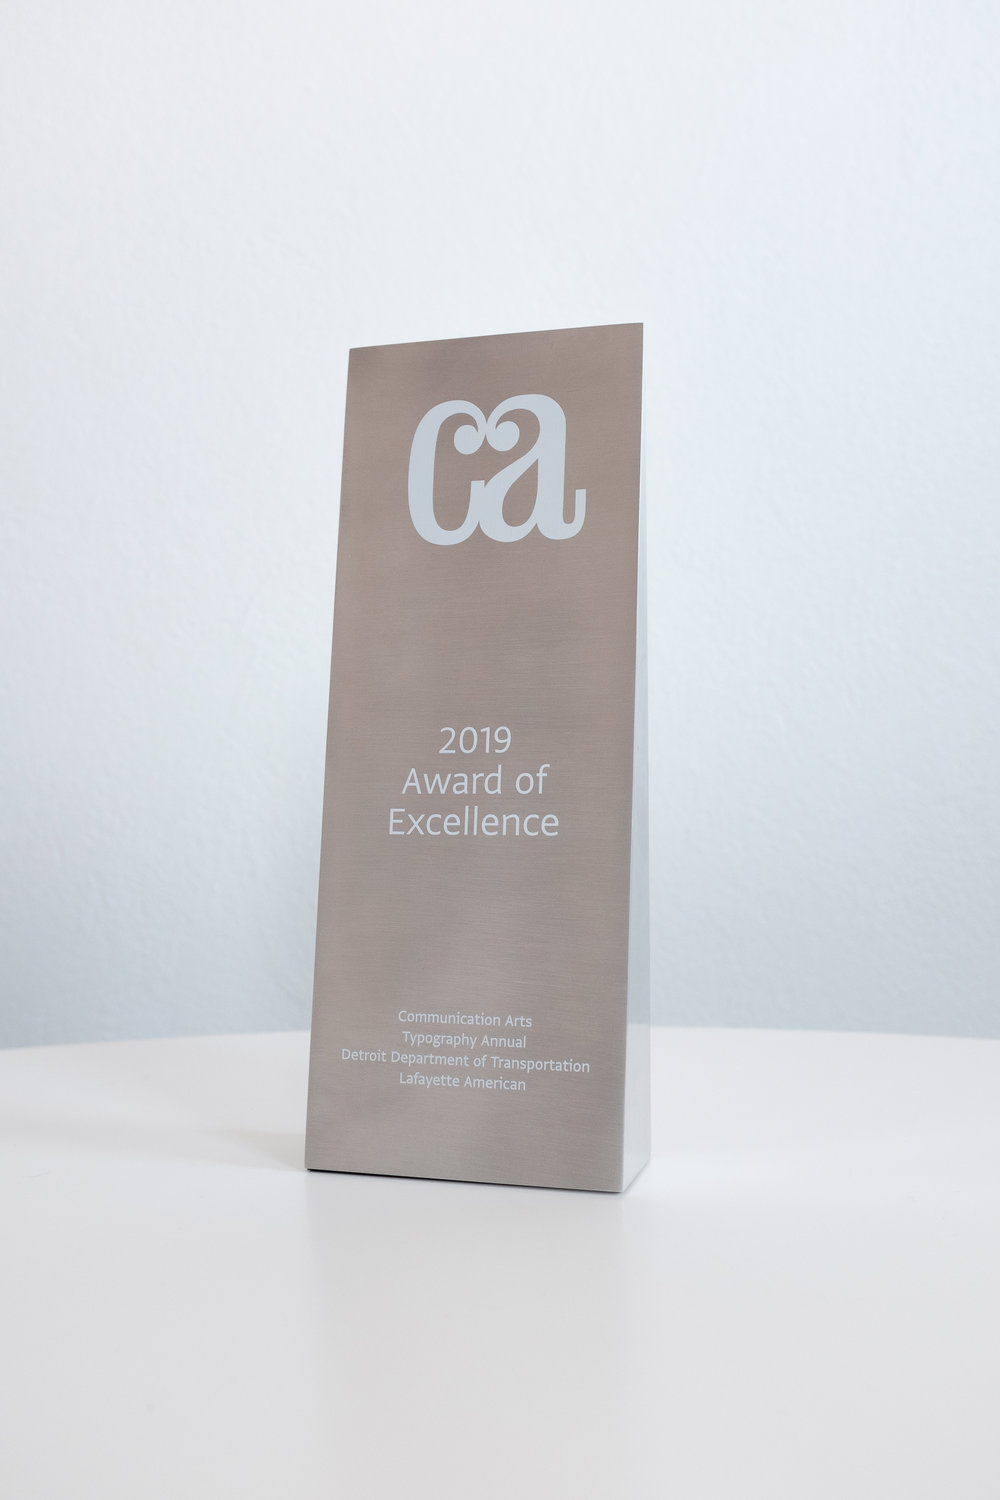 Communication Arts Award of Excellence for DDOT